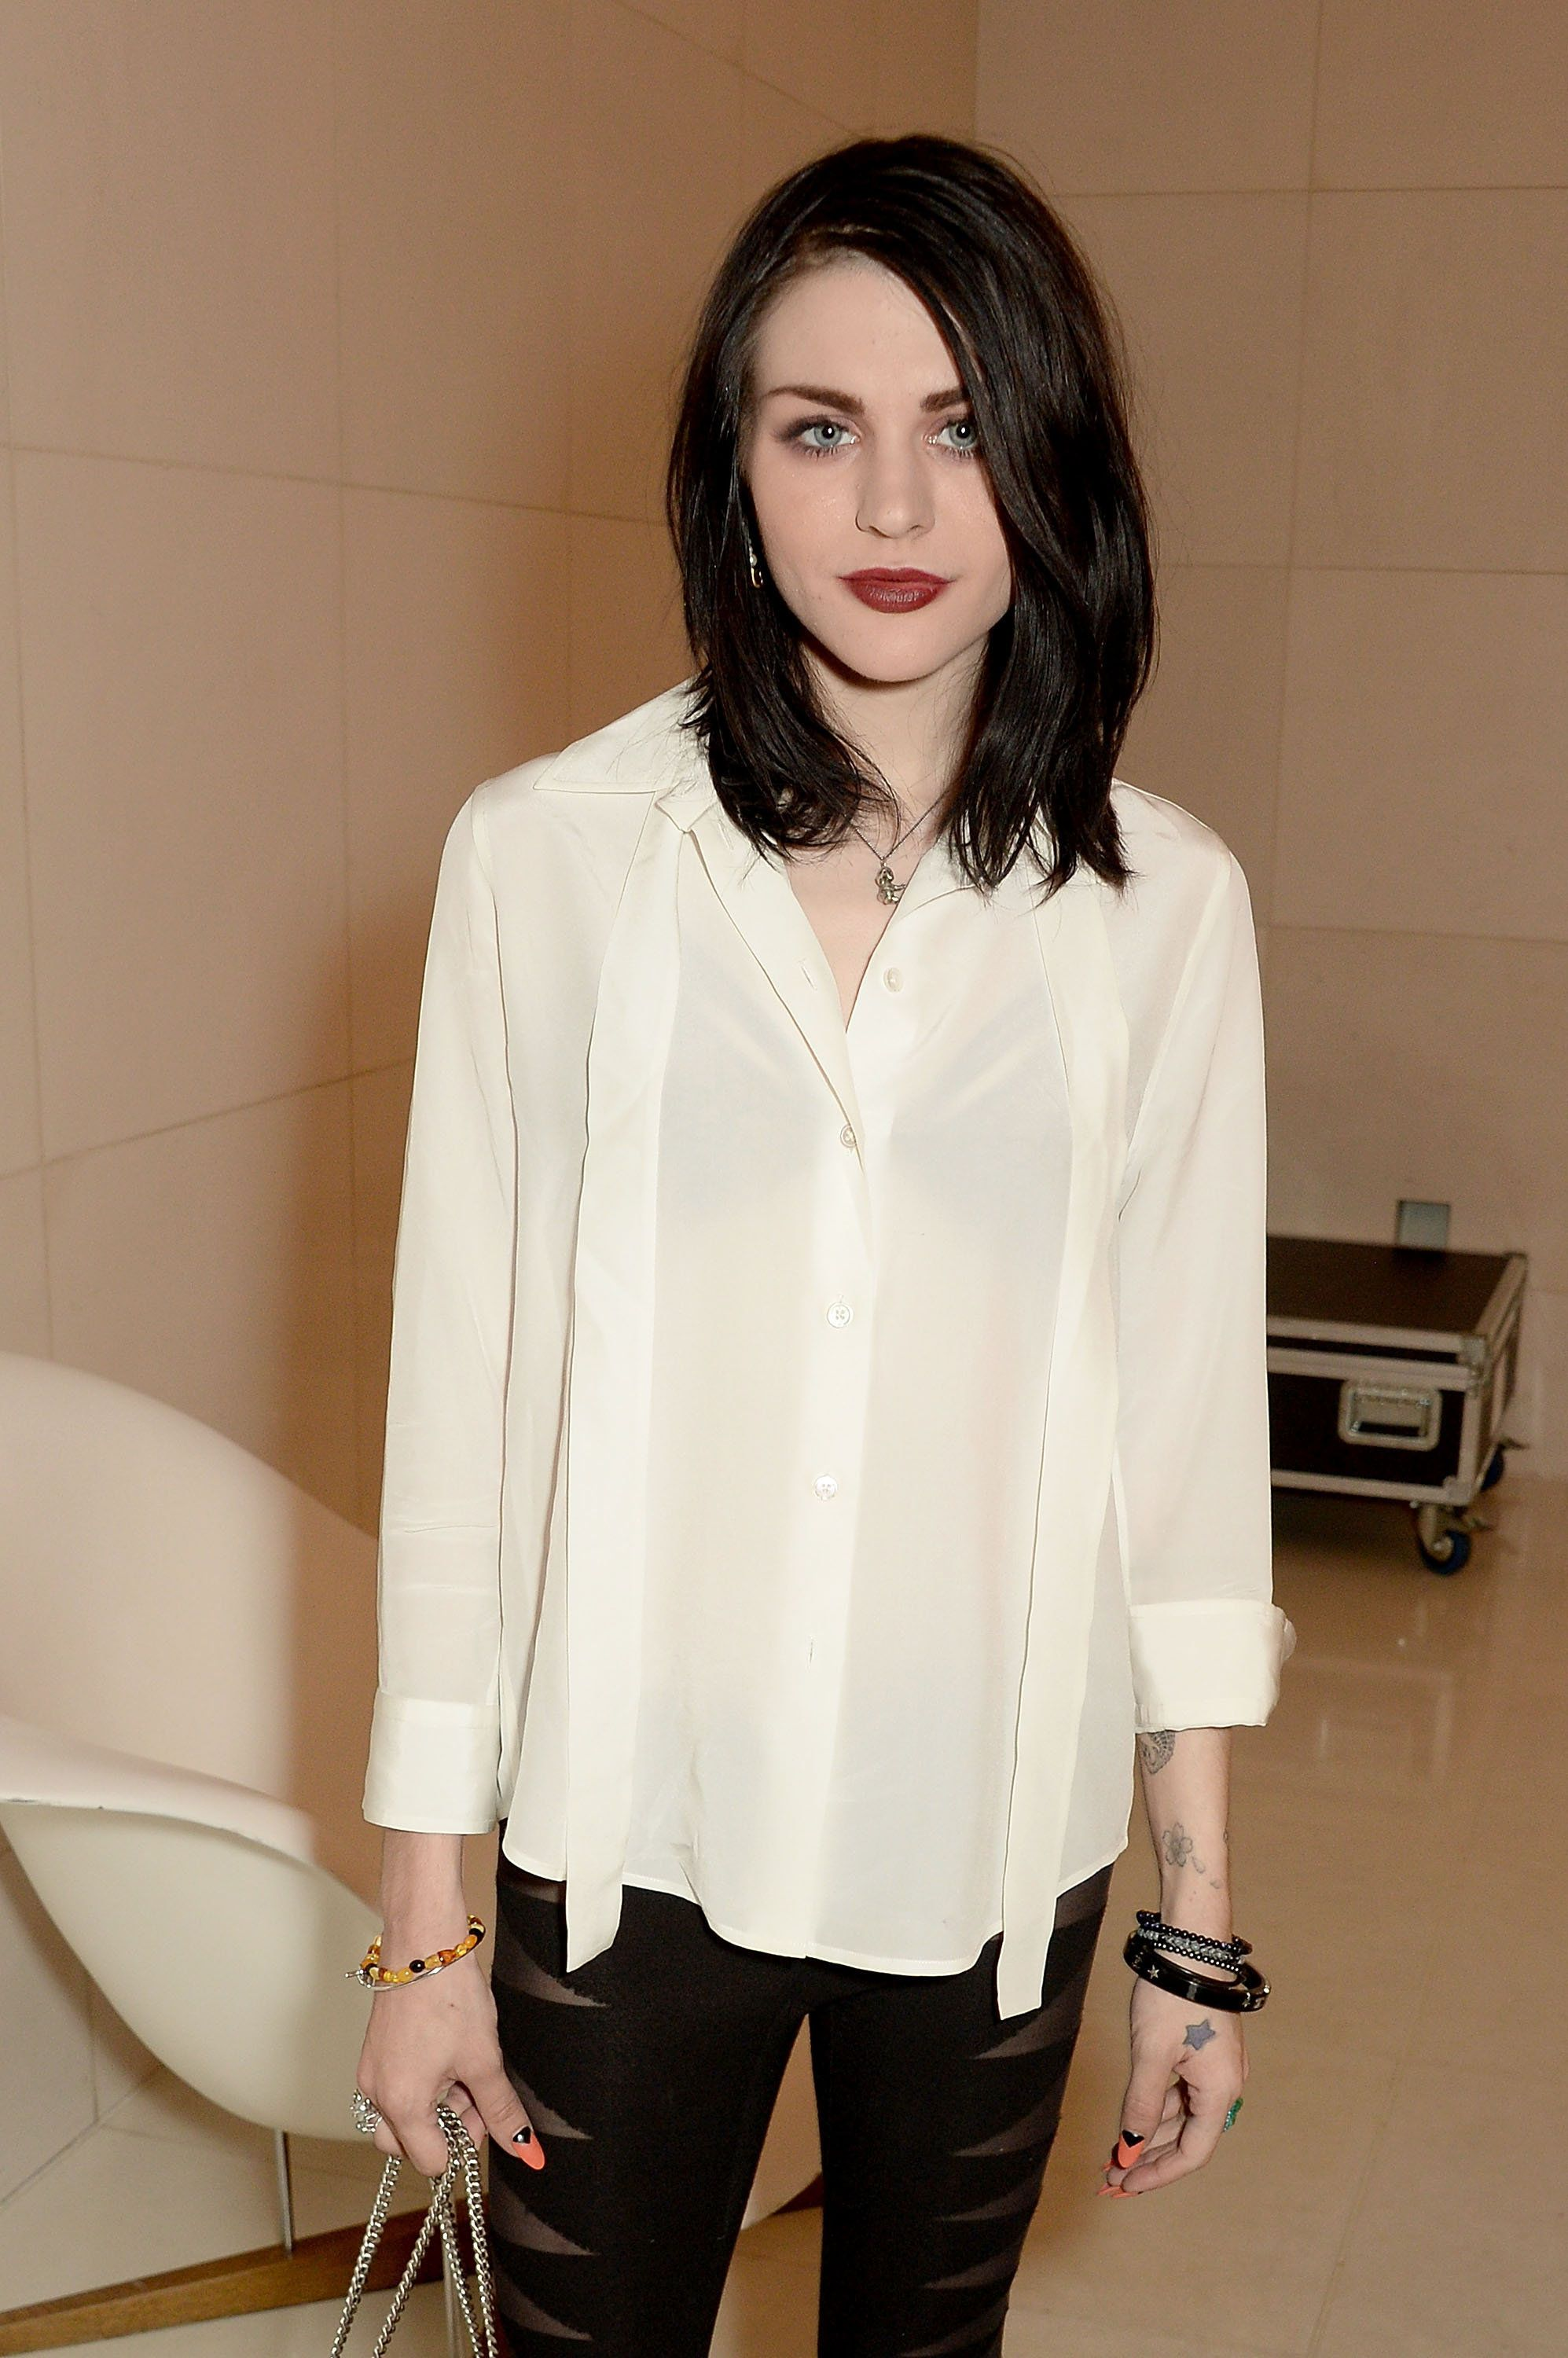 LONDON, ENGLAND - MARCH 21:  Frances Bean Cobain attends a special In Conversation event with Courtney Love as part of the Liberatum 'Women in Creativity' series presented by St Martins Lane on March 21, 2016 in London, England.  (Photo by David M. Benett/Dave Benett/Getty Images)